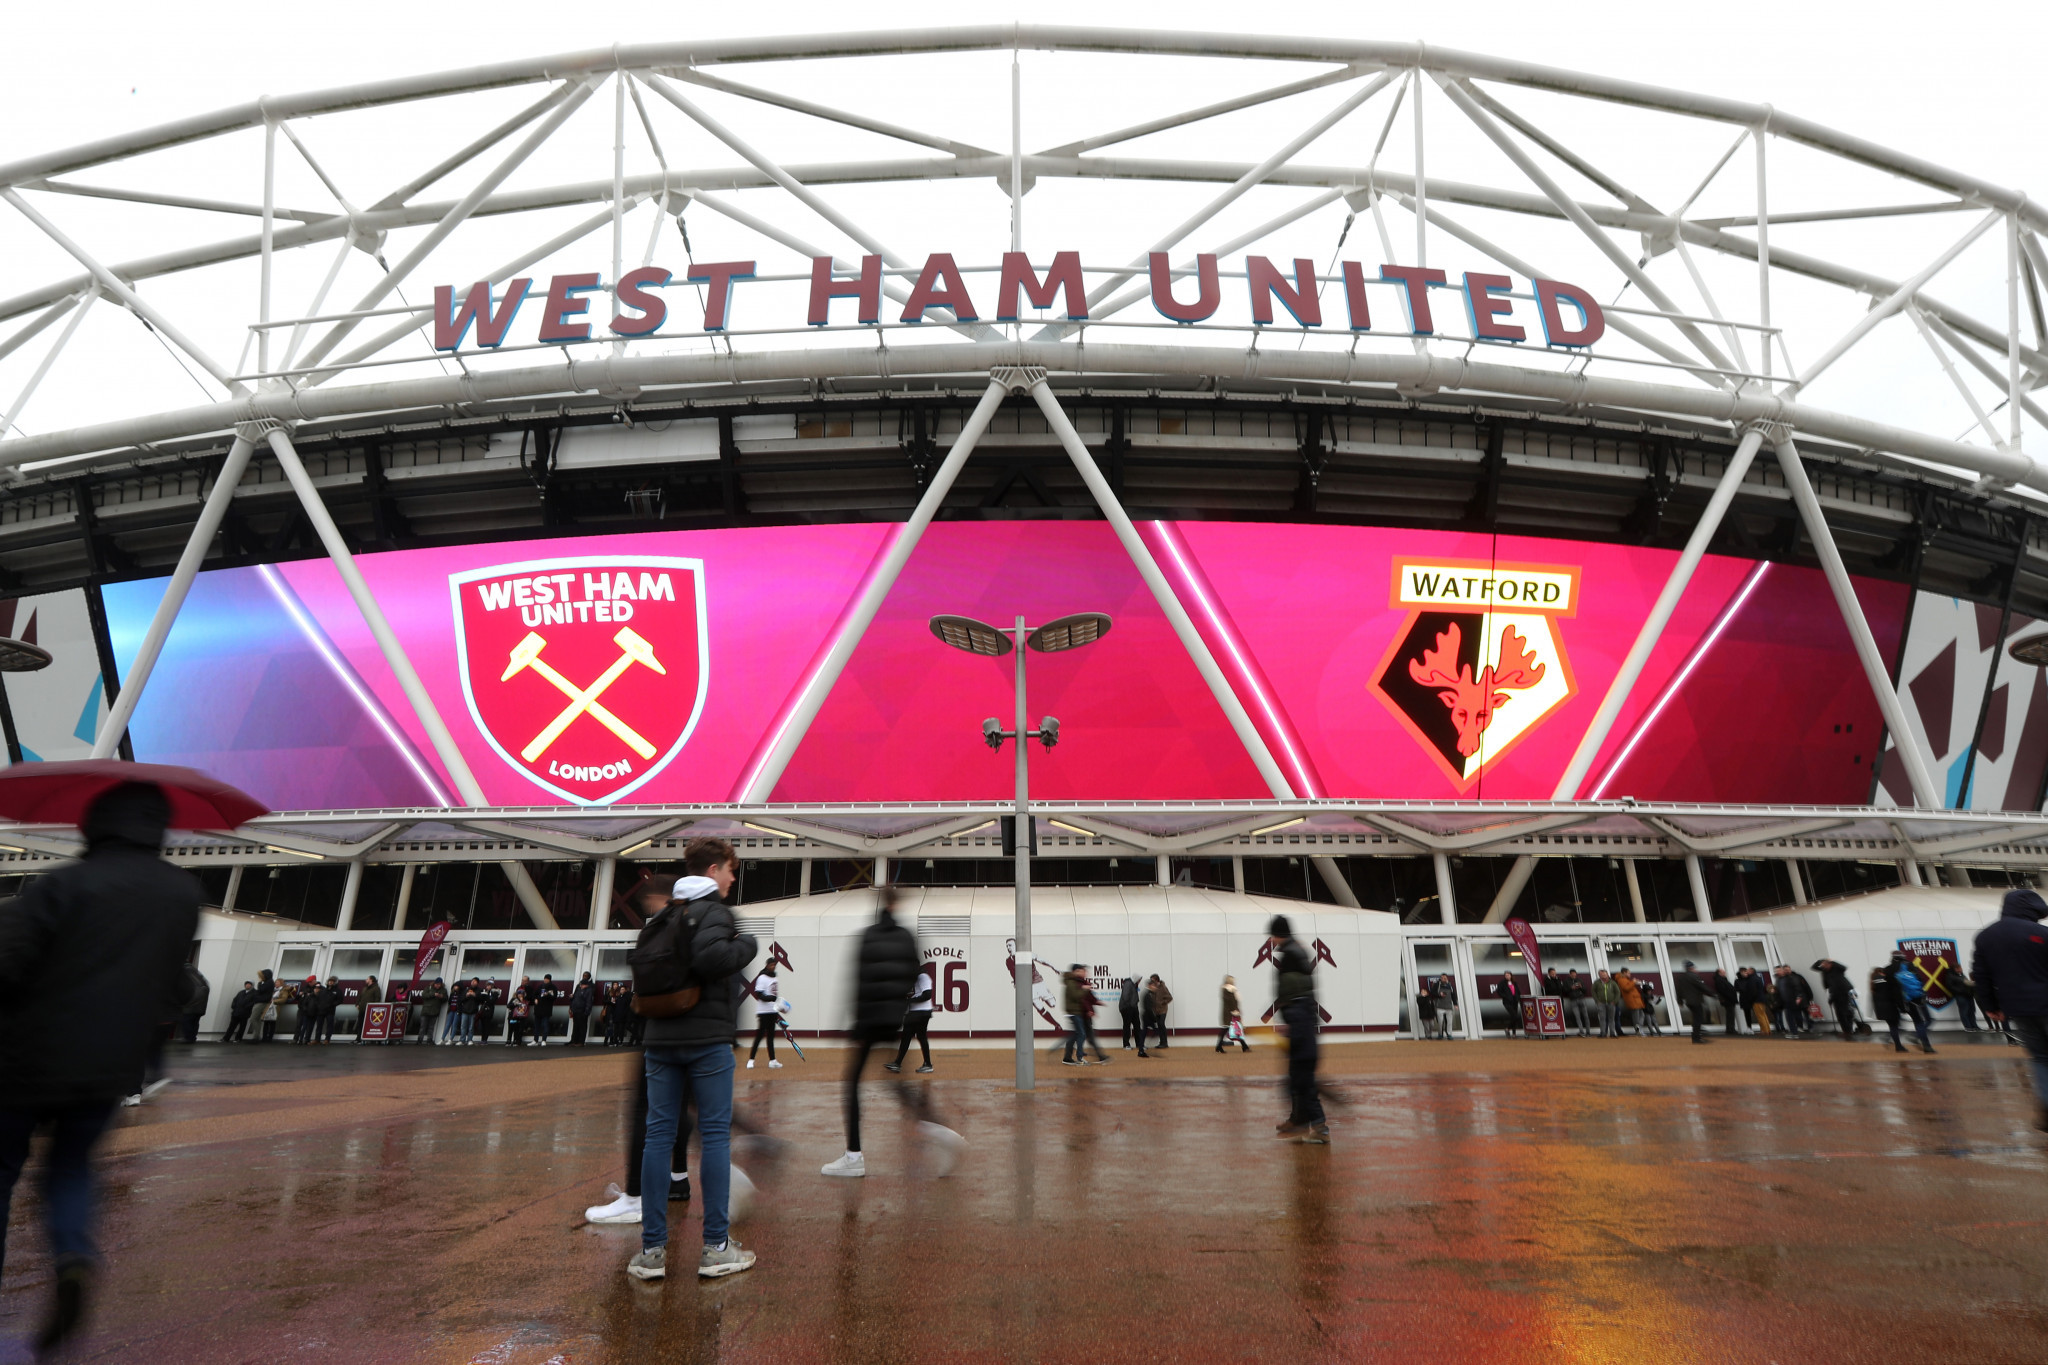 London Stadium tenant West Ham United scores £43.5 million profit